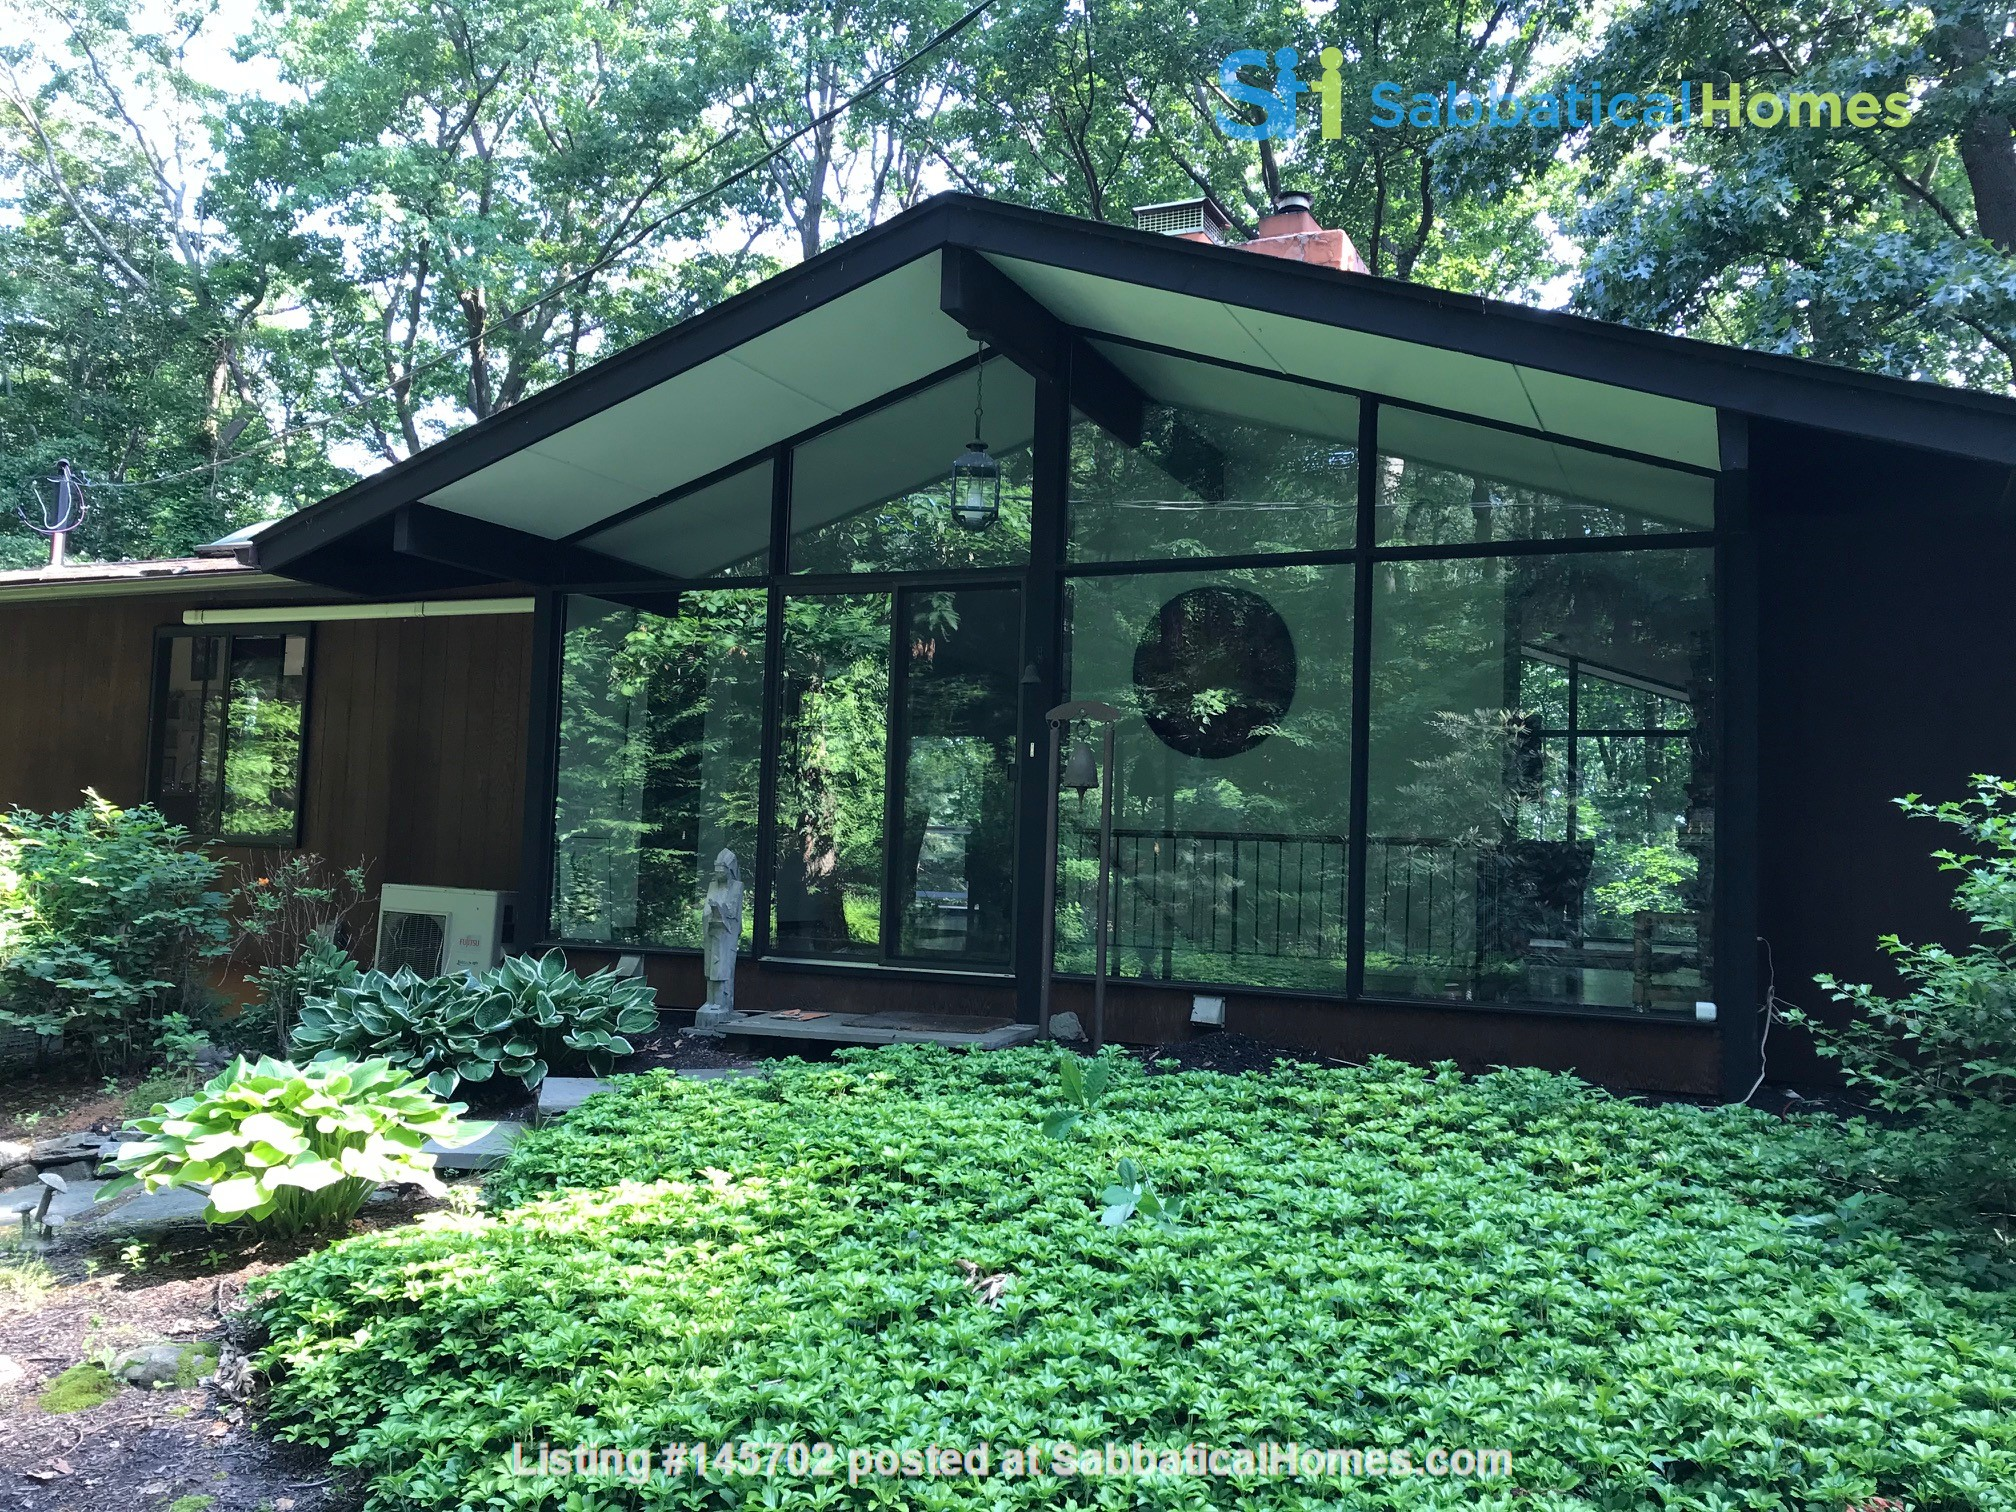 Dramatic California Contemporary set in woods adjacent to Valley Forge Park Home Rental in Phoenixville, Pennsylvania, United States 0